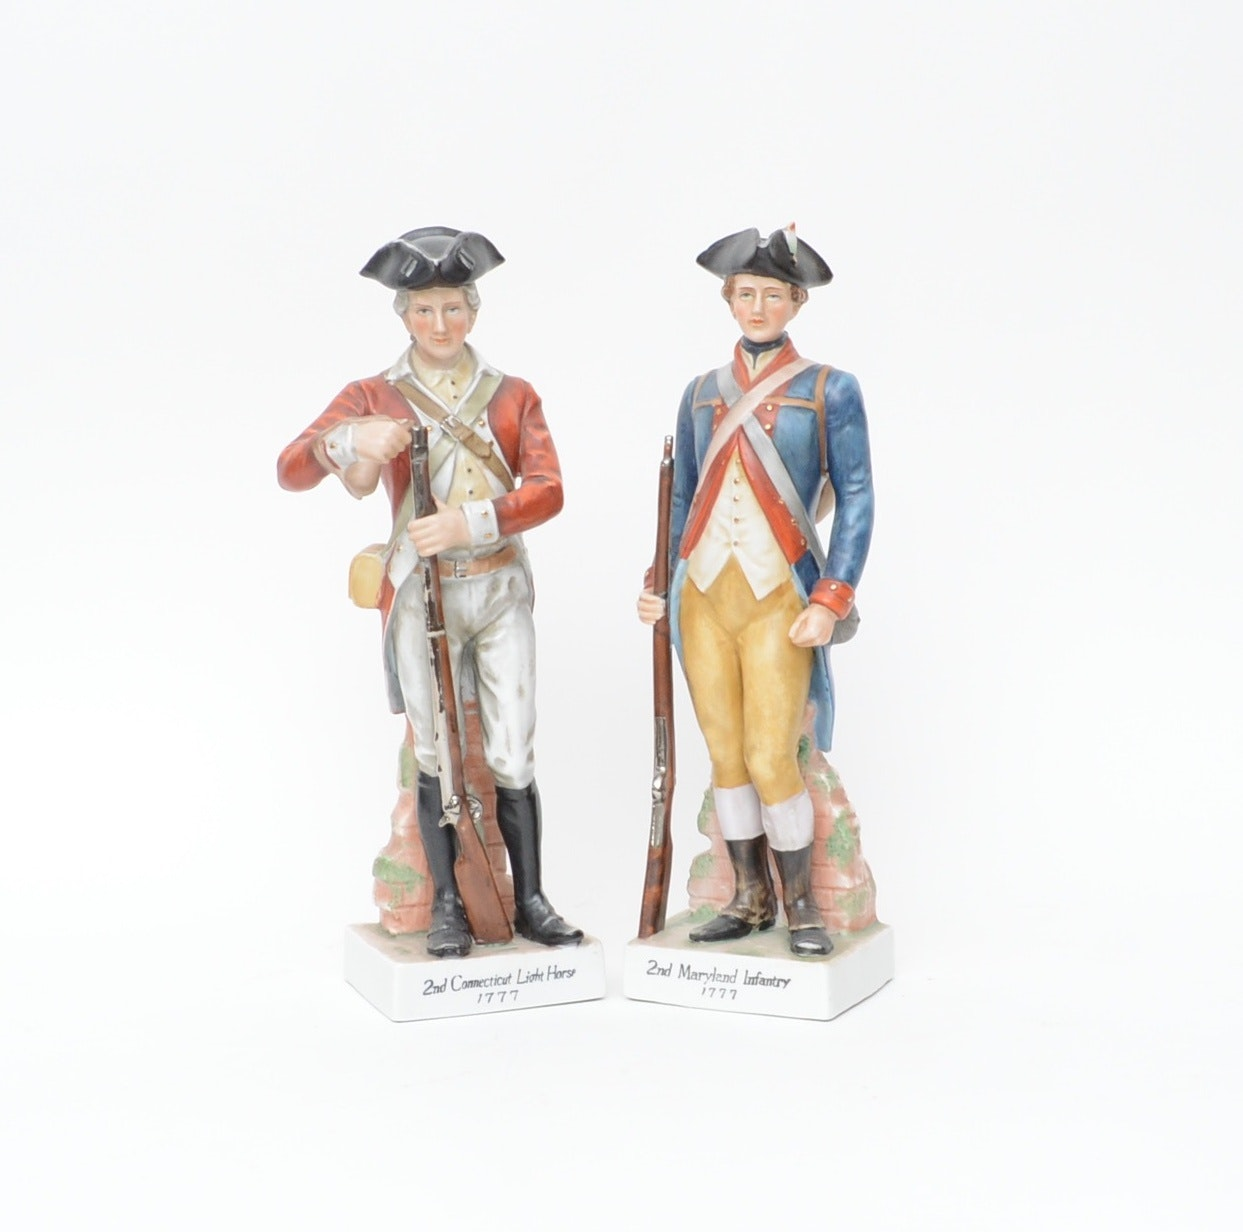 Pair of Vintage Porcelain Revolutionary  War Figurines